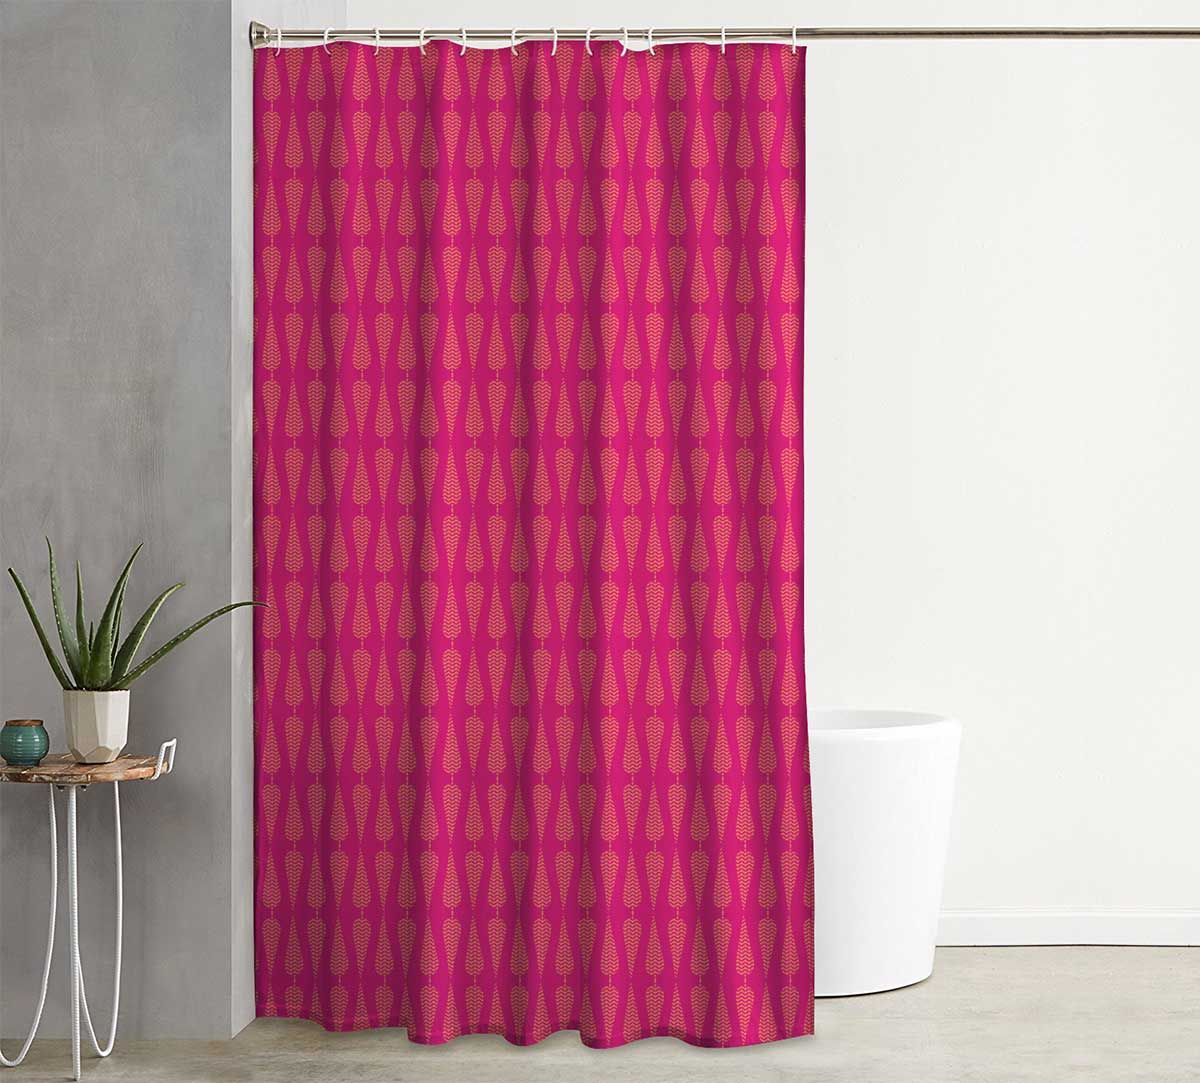 India Circus Conifer Spades Shower Curtain Tap To Expand